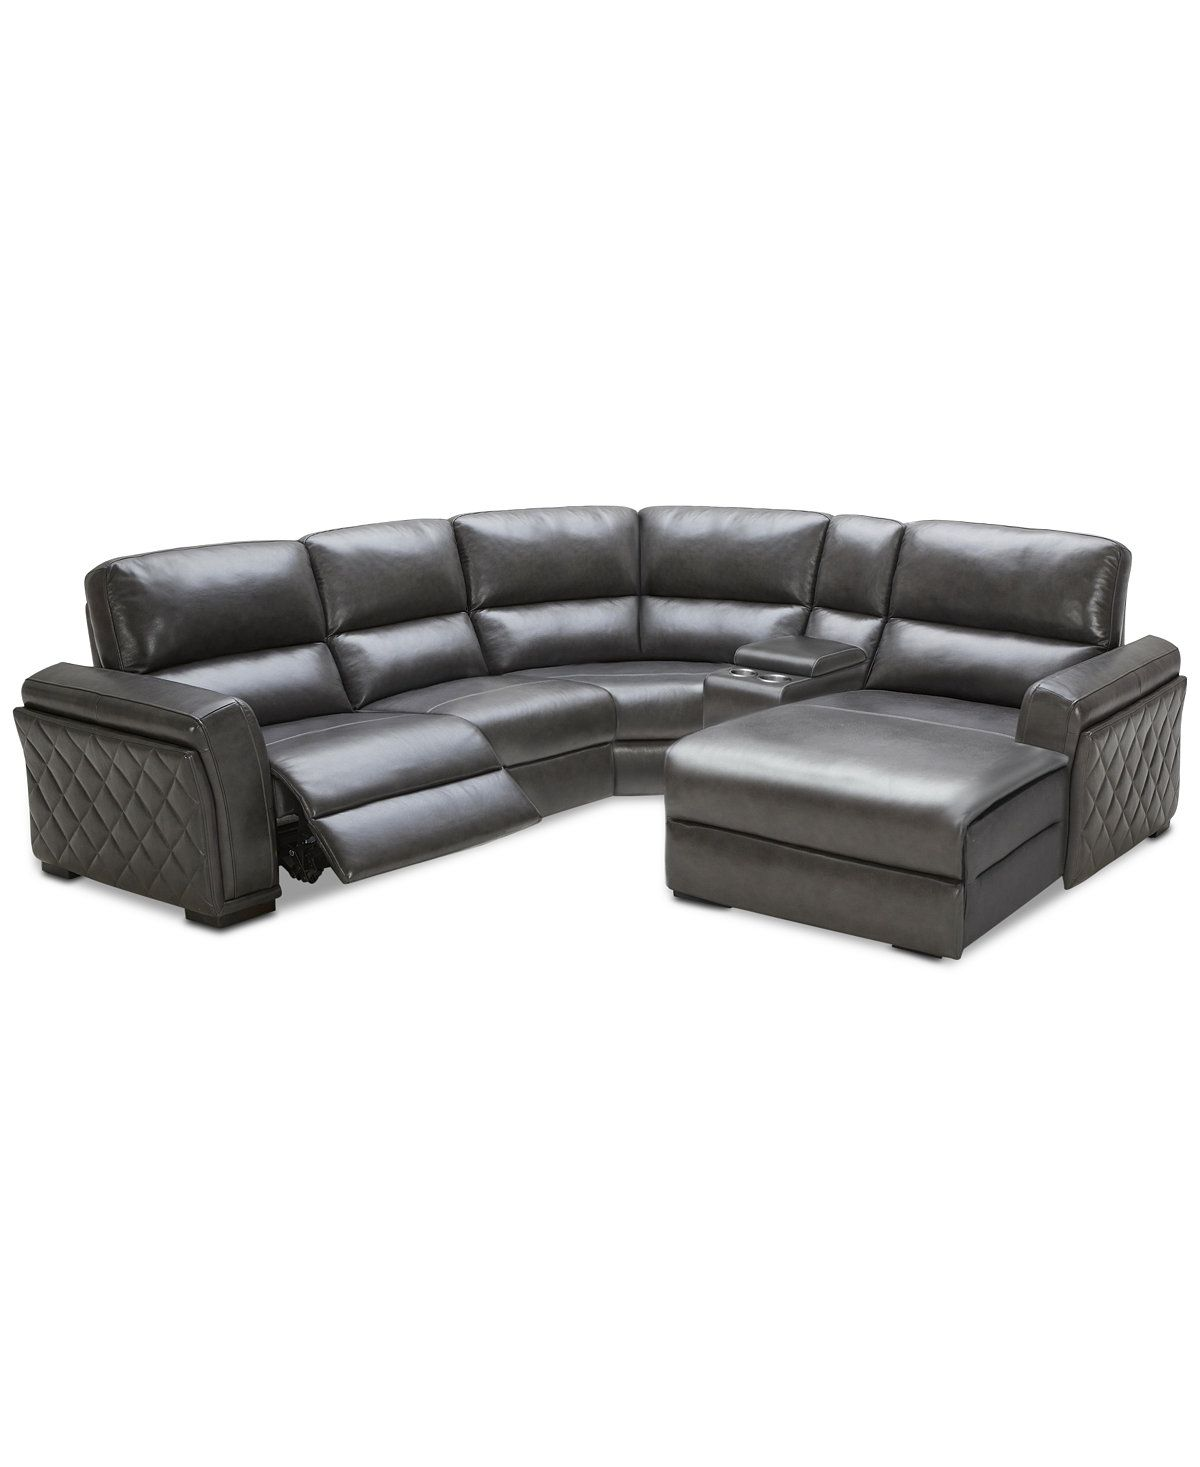 Furniture CLOSEOUT! Jessi 6-pc Leather Sectional Sofa with Chaise